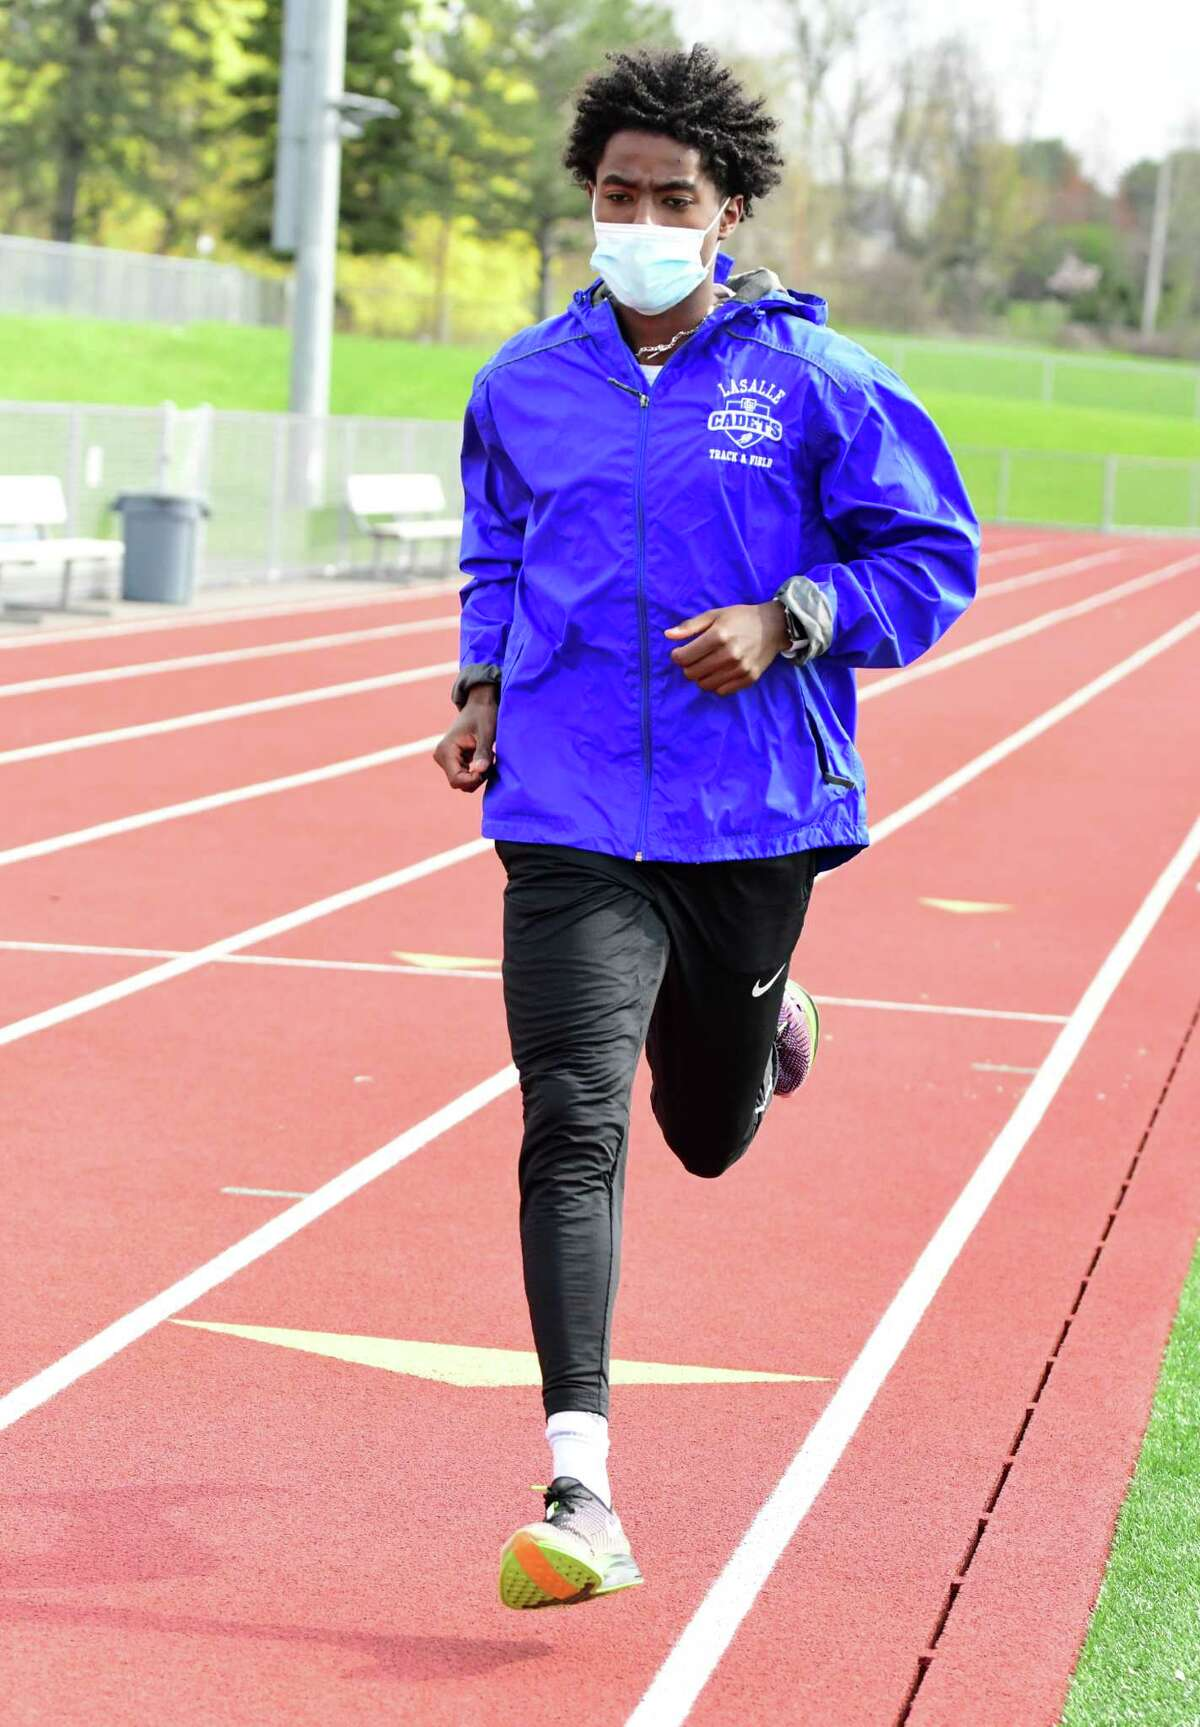 La Salle's Gitch Hayes warms up on the track before a race against Lansingburgh on April 20, 2021. Hayes was the top 1,600-meter runner in Section II and the Athlete of the Year in boys' track and field.